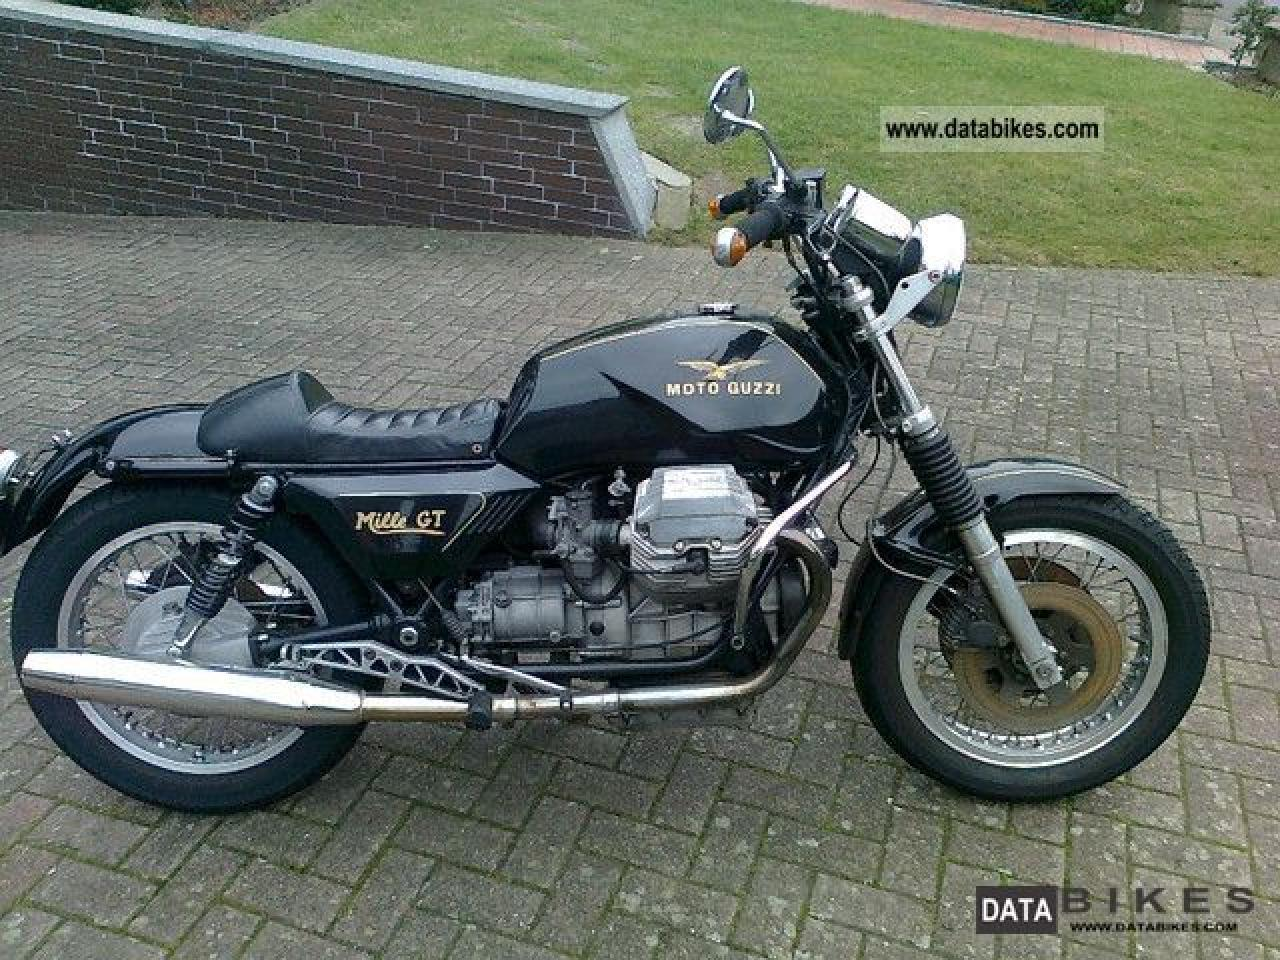 1987 Moto Guzzi Mille GT (reduced effect) #7